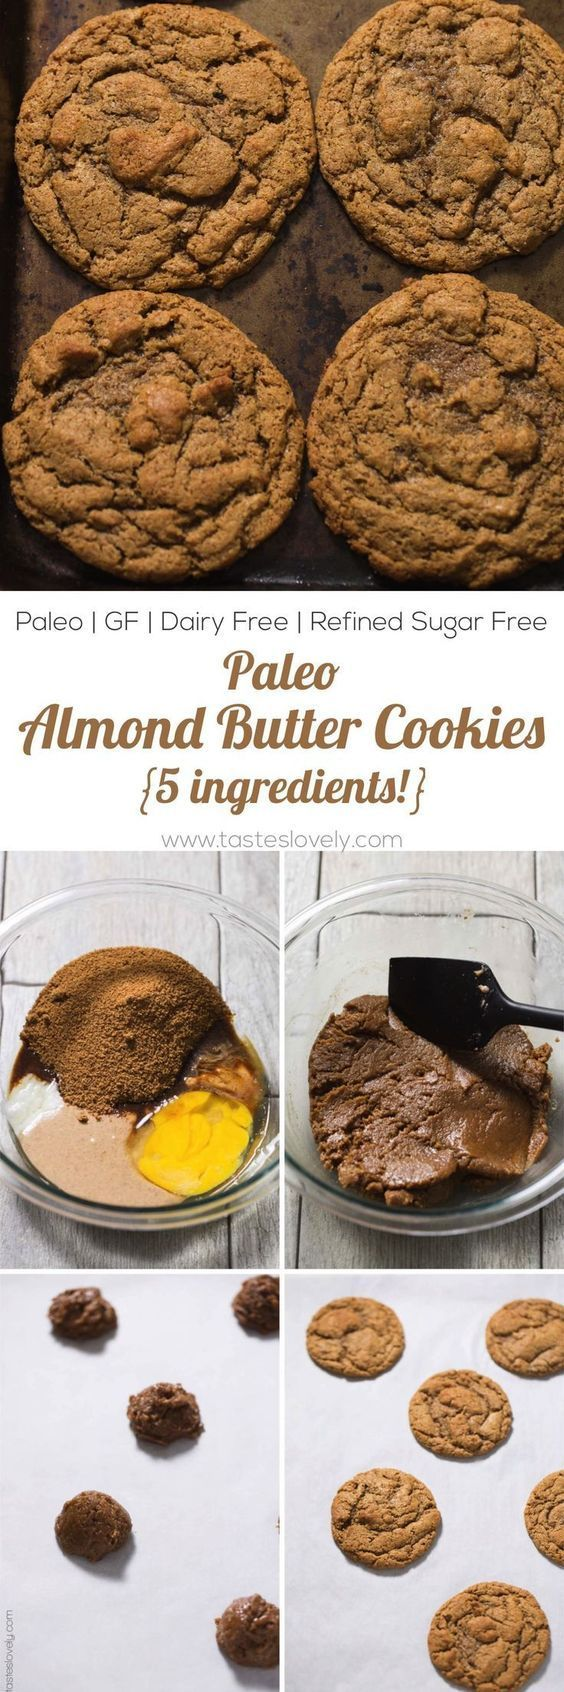 Paleo Almond Butter Cookies Recipe - just 5 ingredients! Paleo, dairy free, gluten free, grain free, refined sugar free dessert. Try these to satisfy your sweet tooth! #TastesLovely #paleocookies #glutenfreecookies #paleo #glutenfreedessert